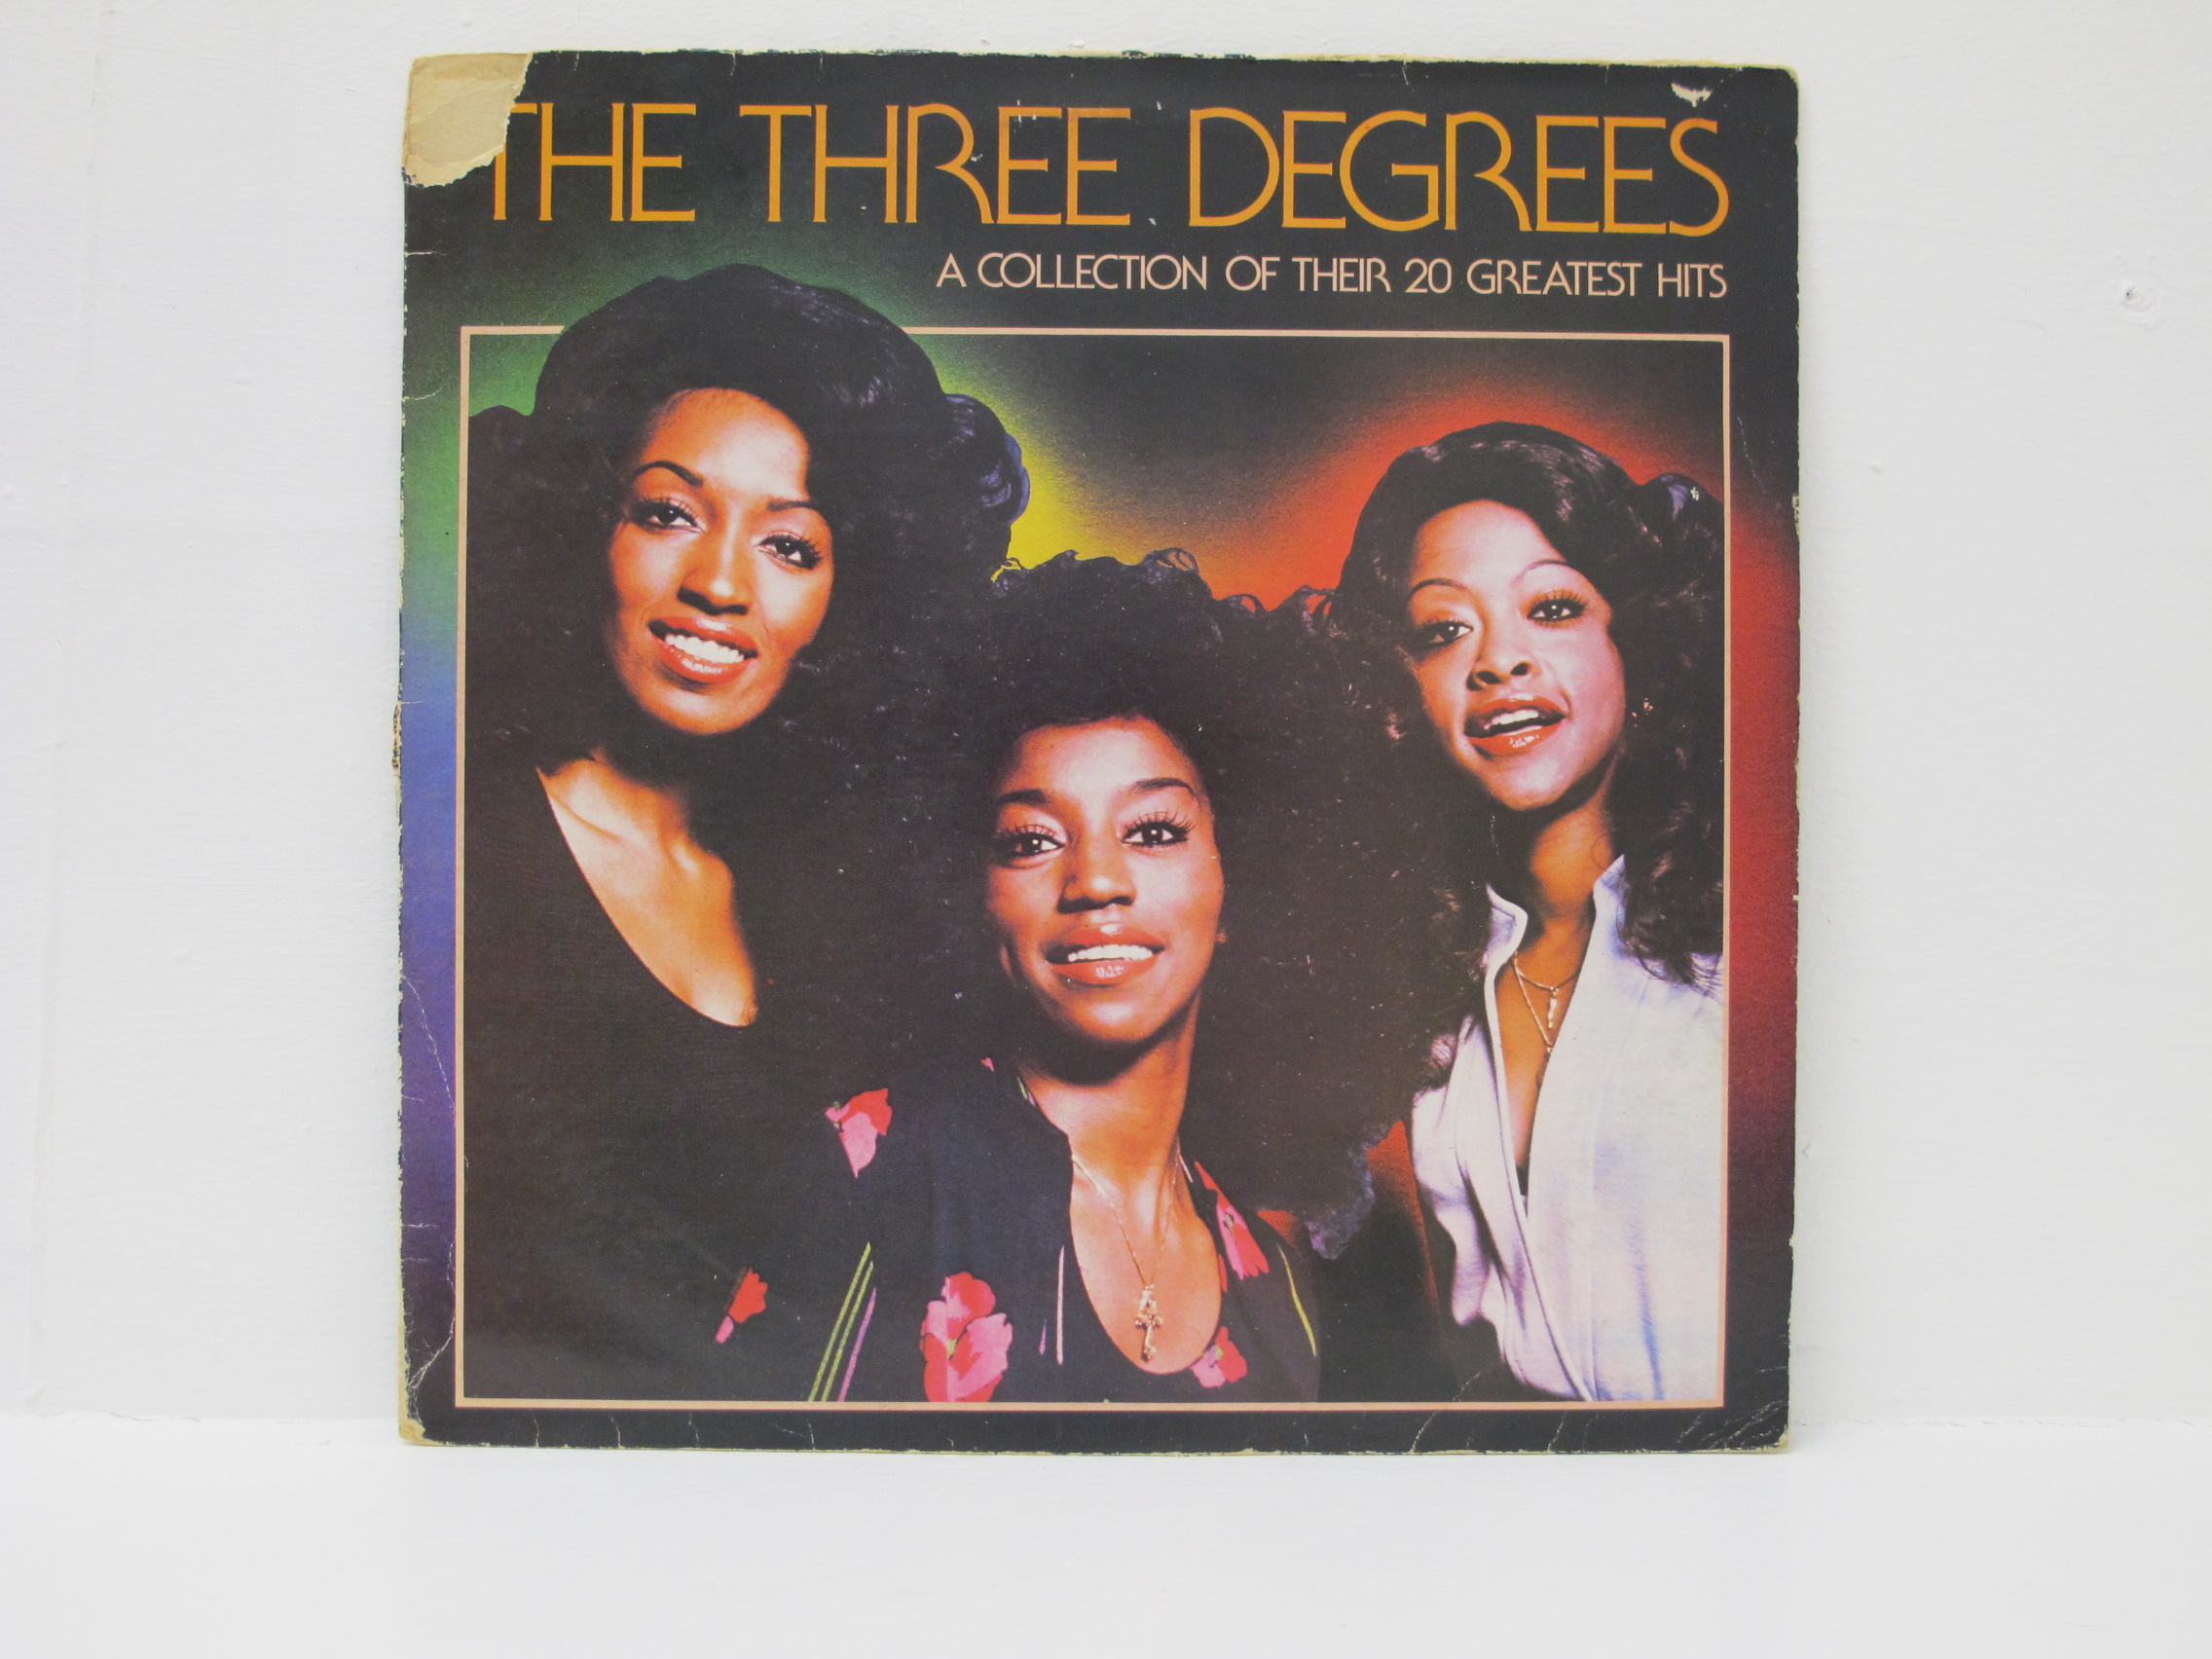 The Three Degrees - A Collection